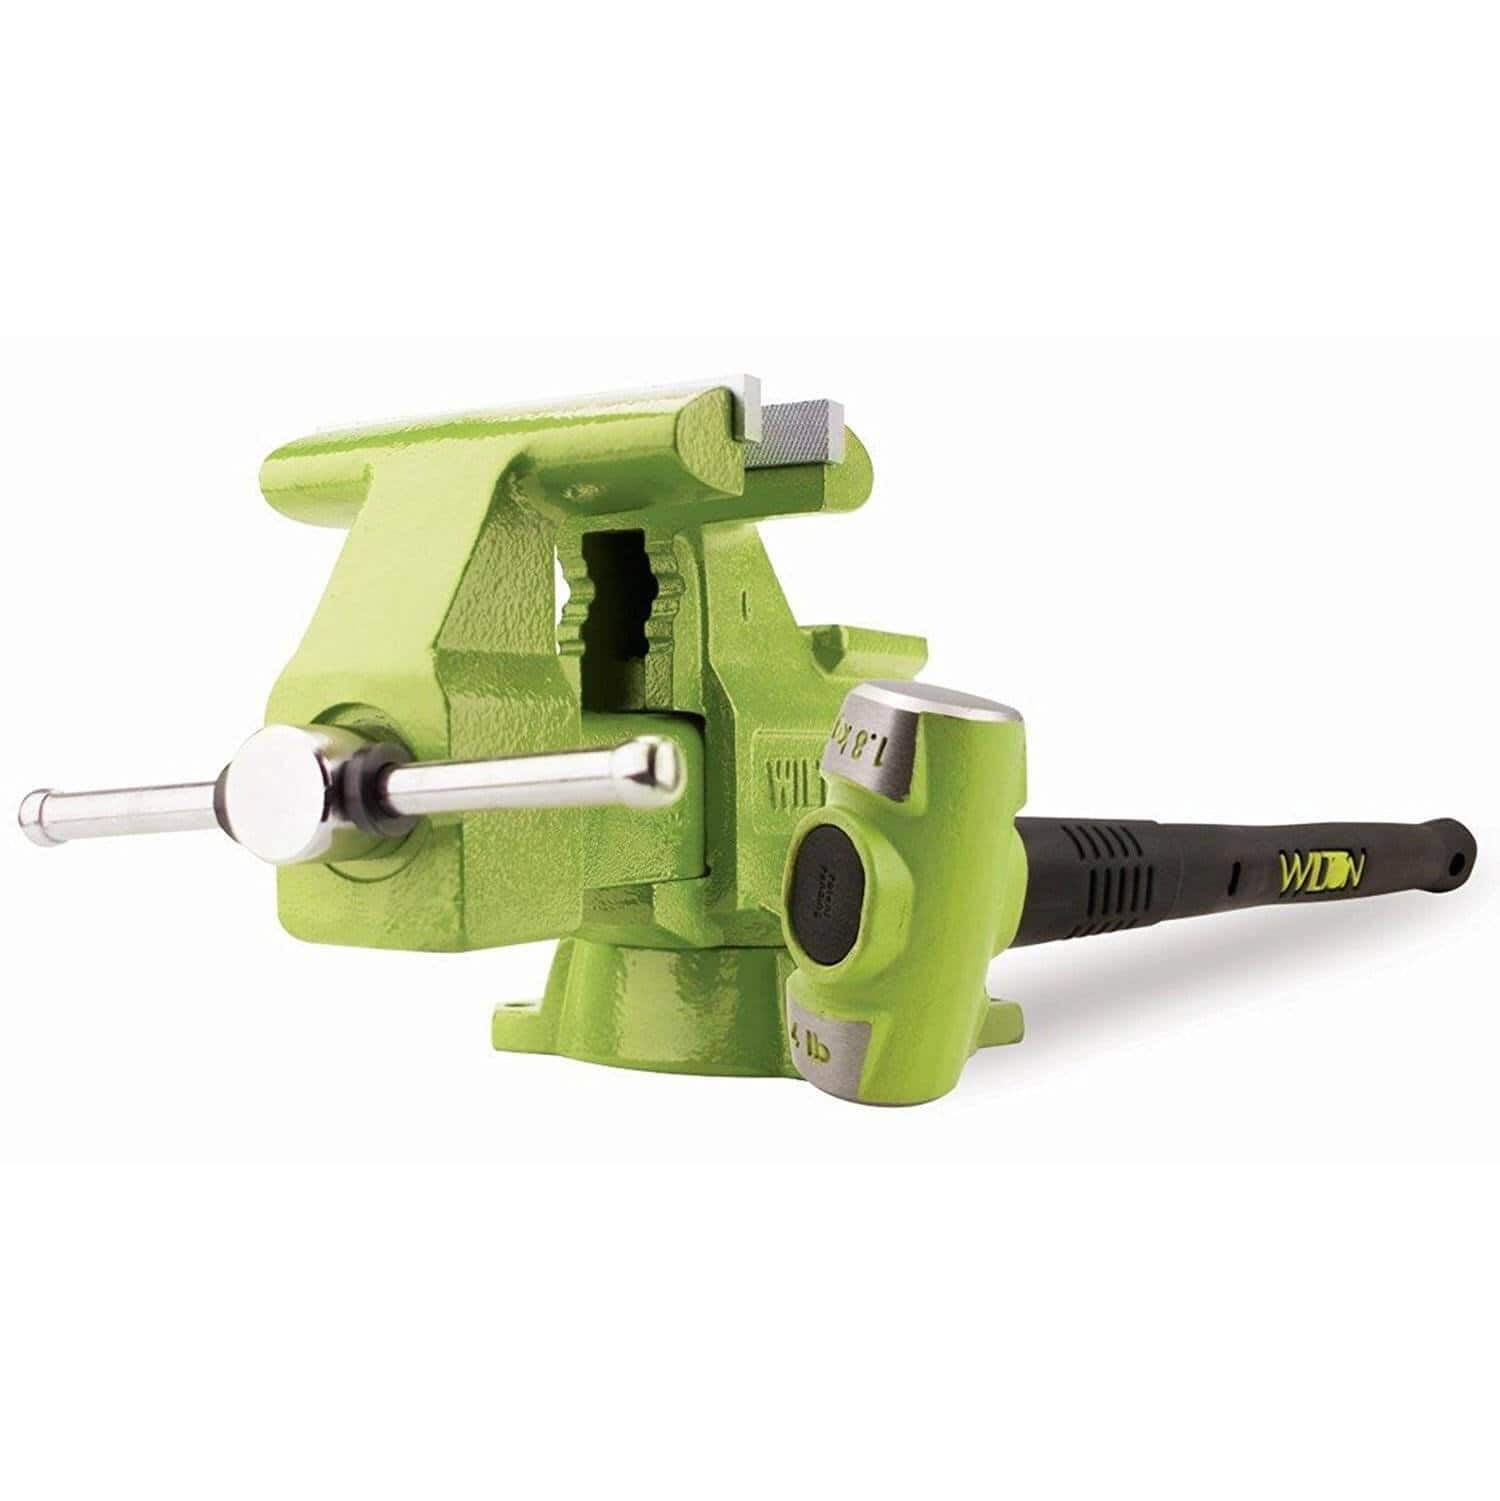 Wilton Bash 11128BH 6.5 Inch Jaw Utility Vise And 4 Pound 12 Inch Hammer Combo $119.99 + FS